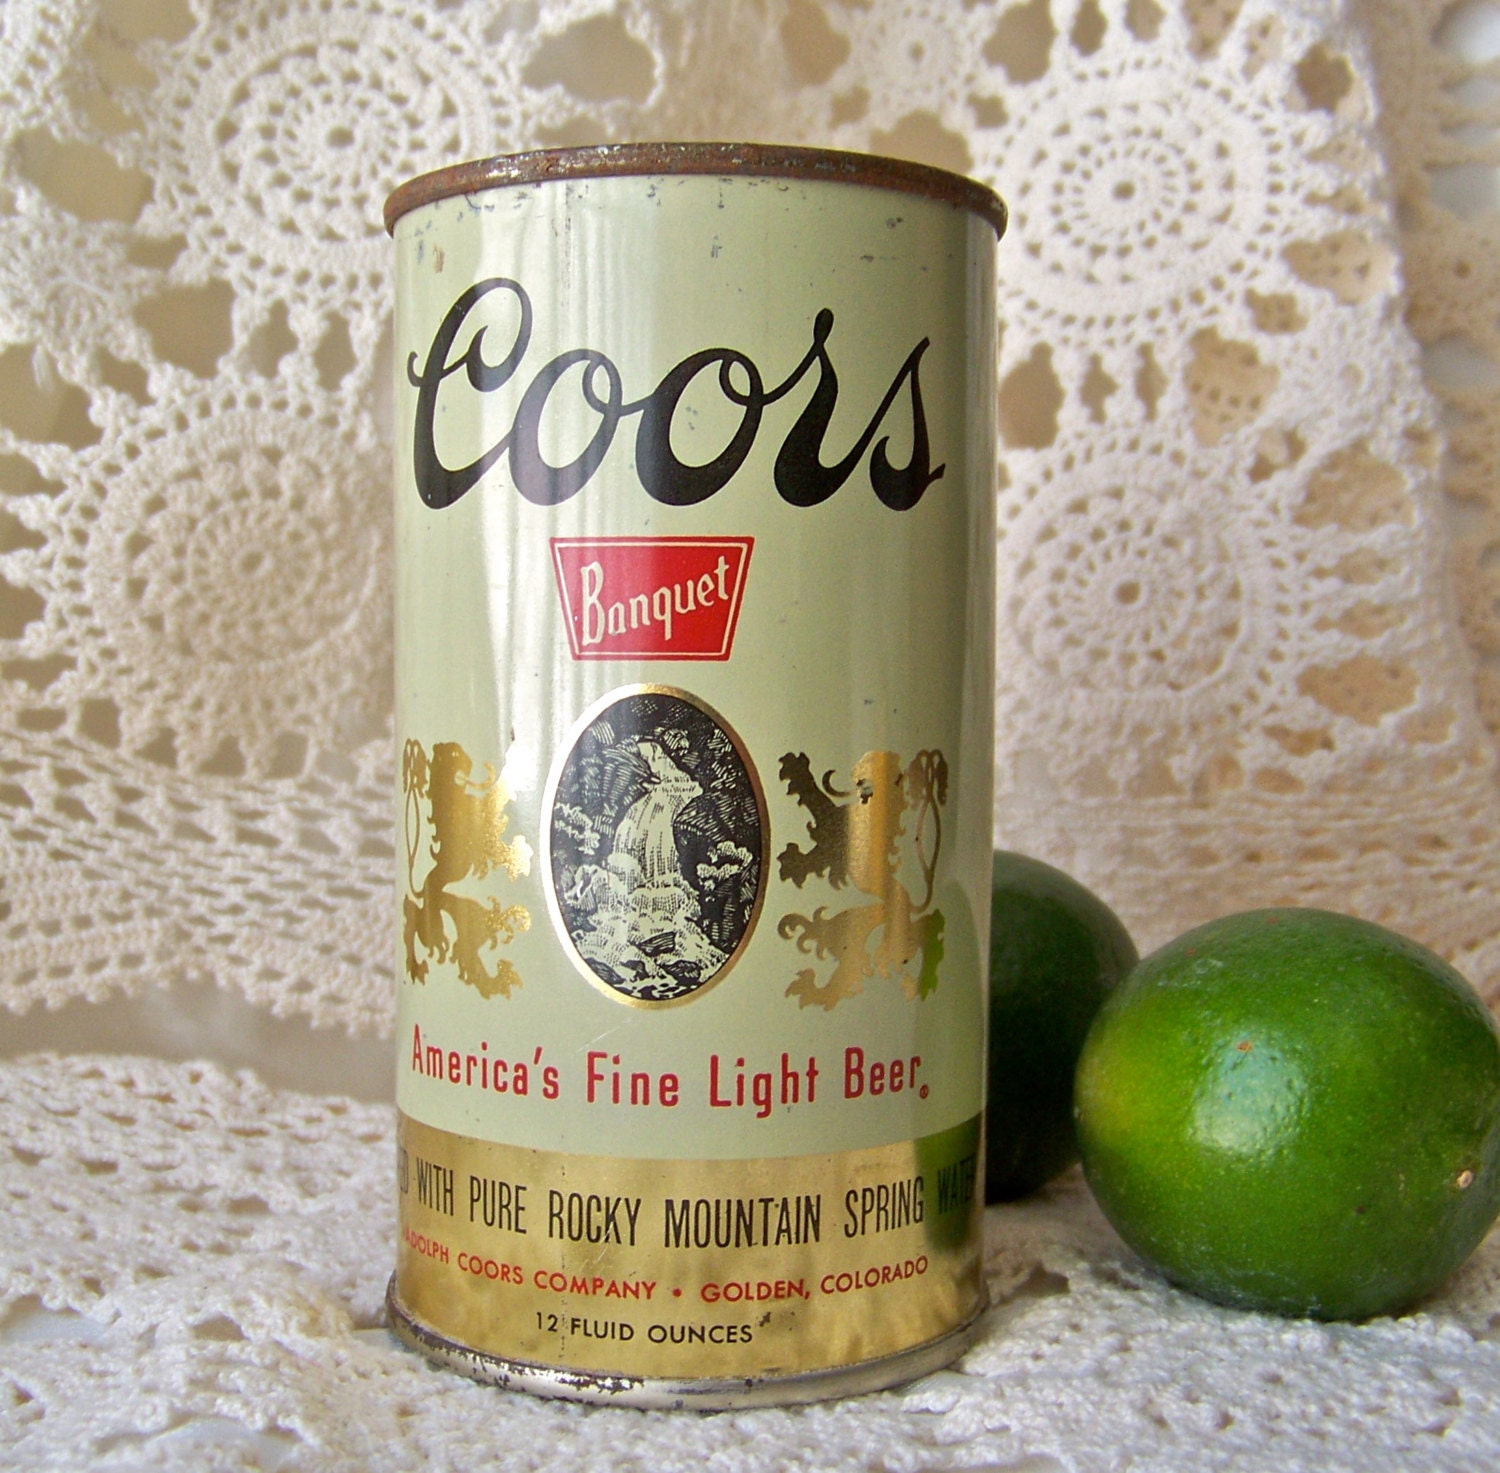 Old Coors Beer Cans - Bing images